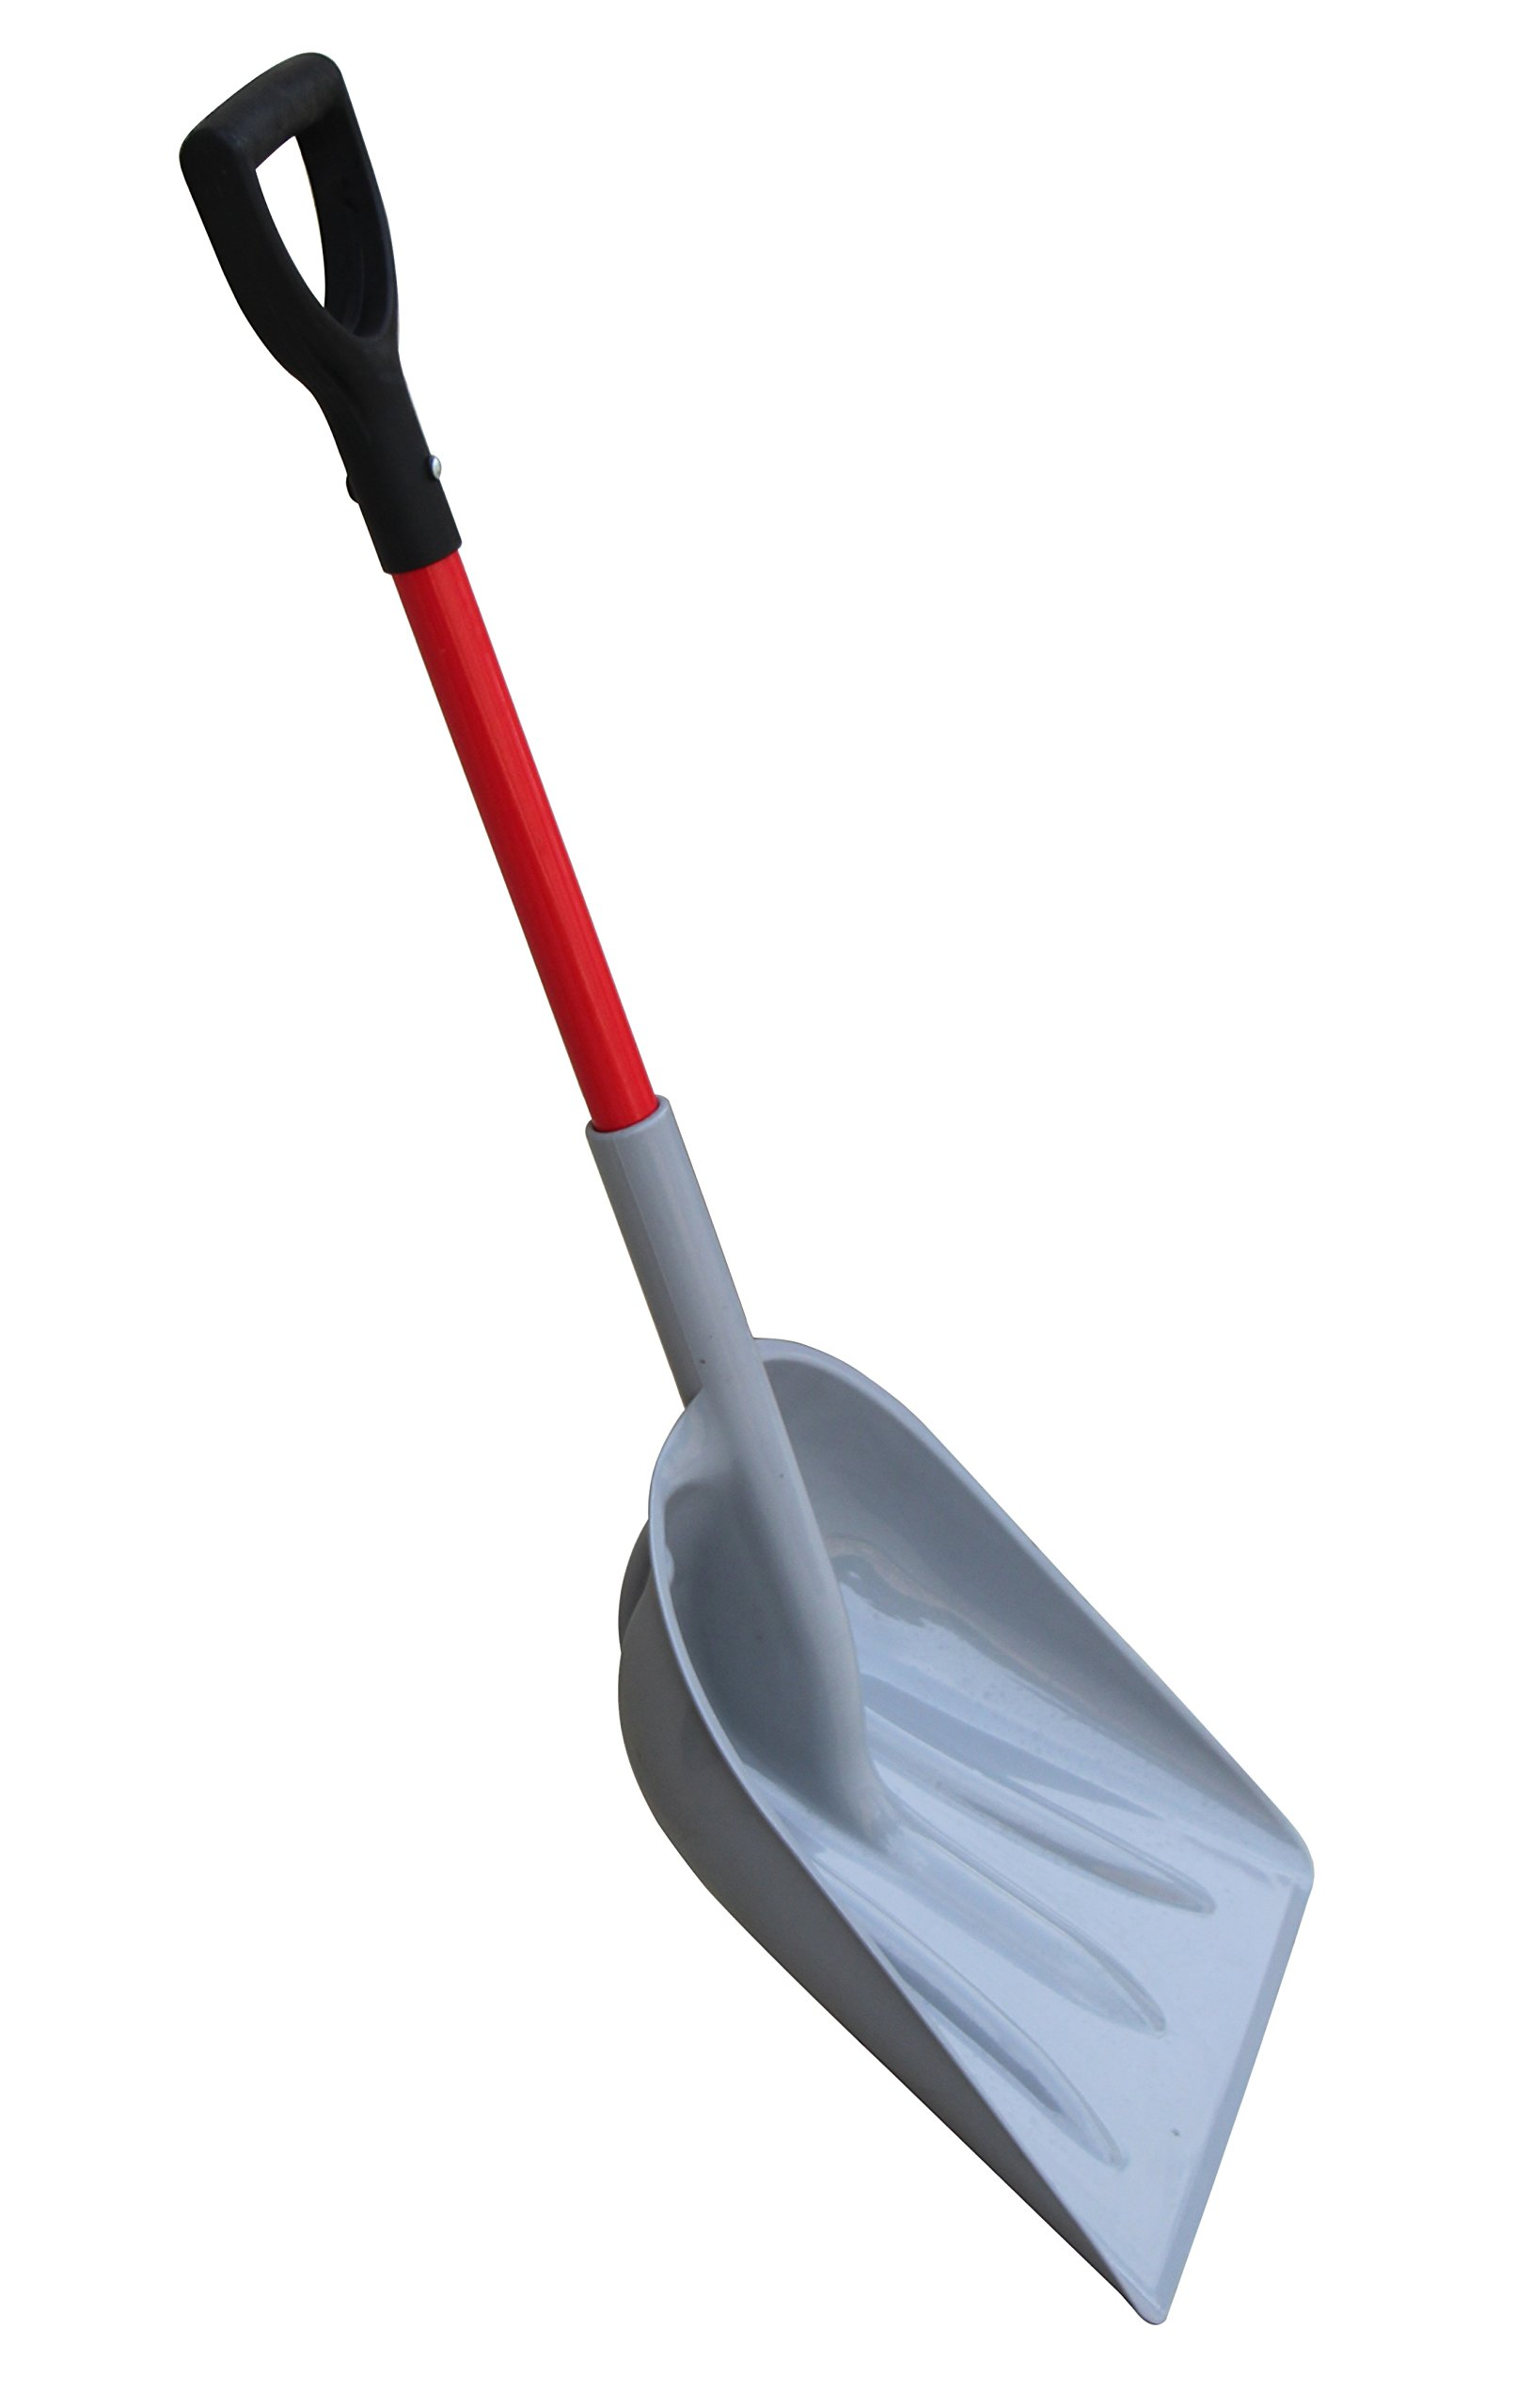 TABOR TOOLS J218A Mulch/Snow Scoop with Strong Fiberglass Handle, Large Snow Shovel with Comfortable D-Grip, Short 26'' Handle